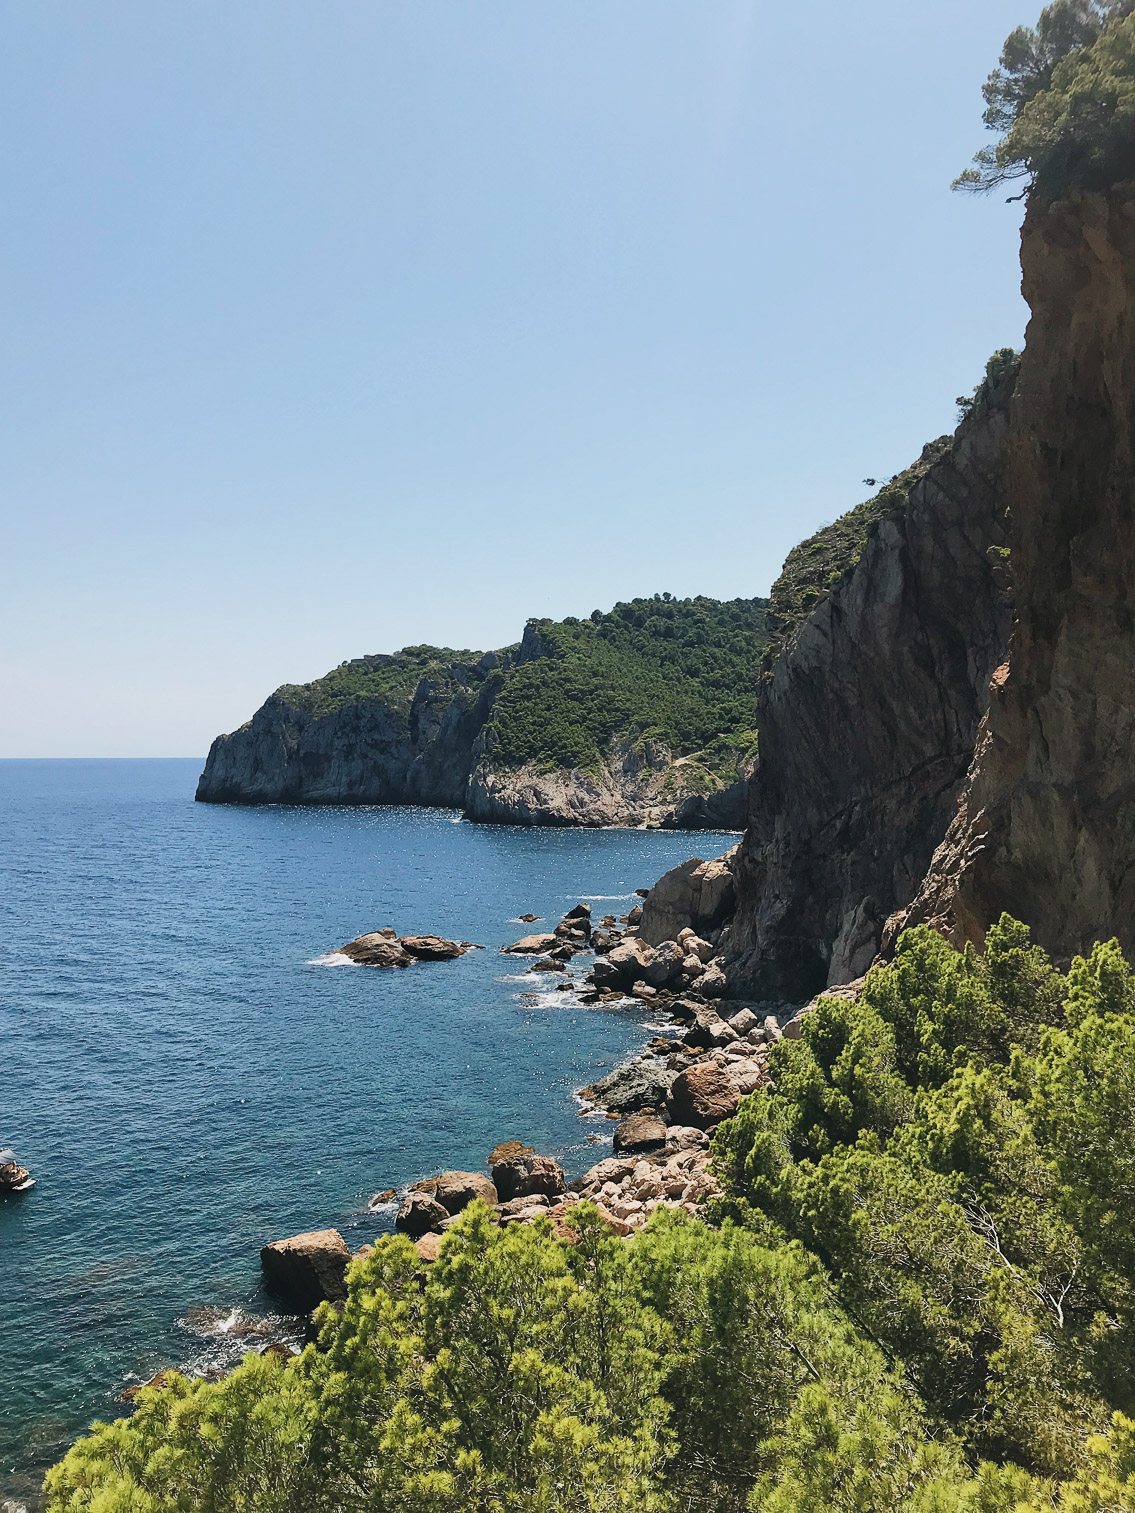 Costa Brava - The cat, you and us